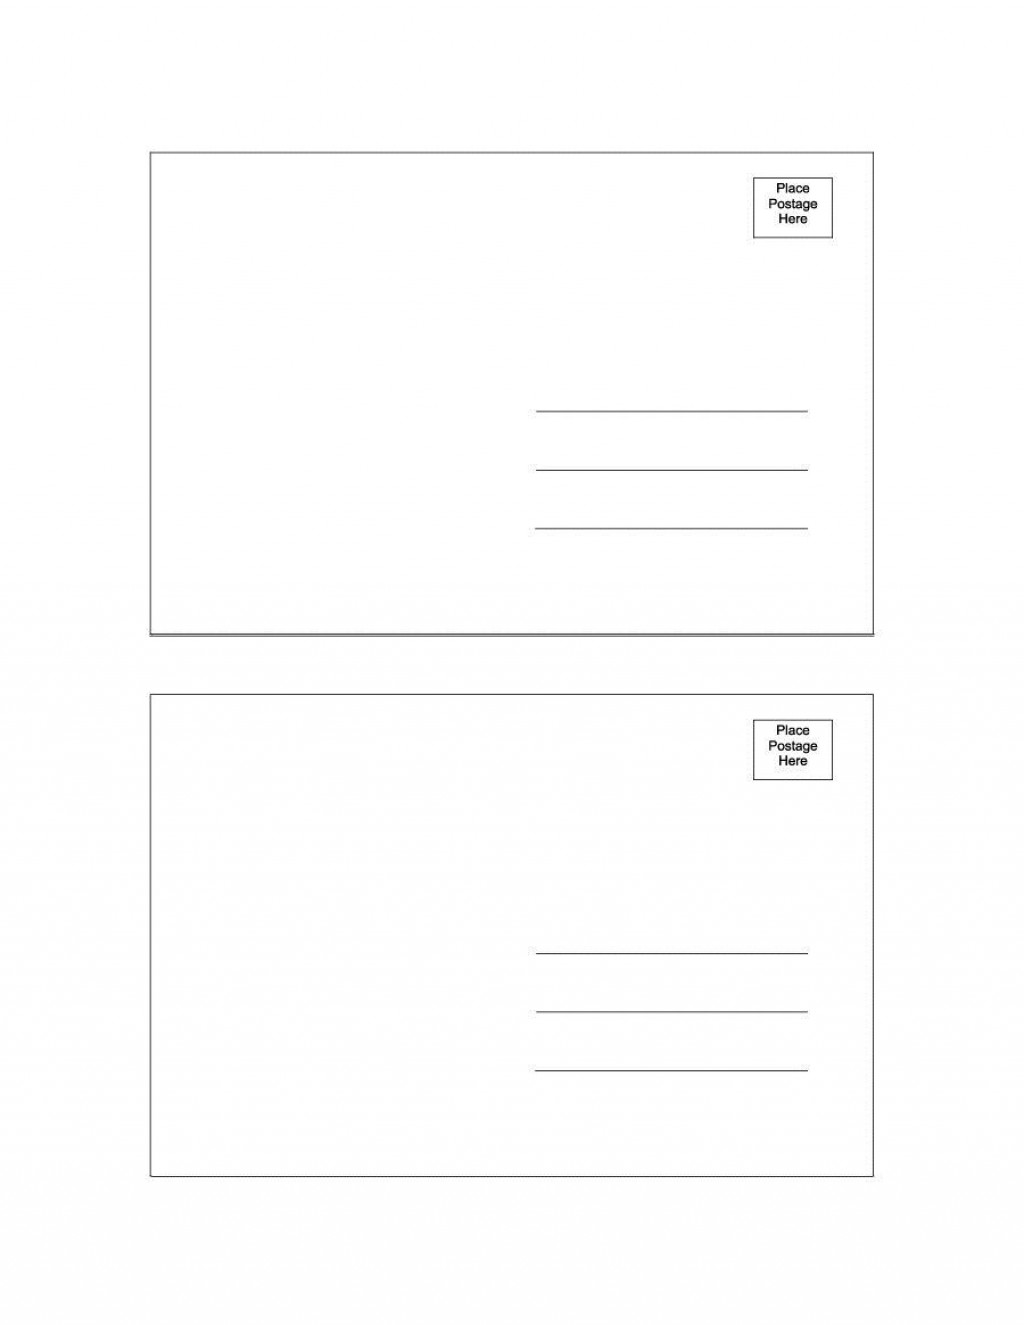 001 Incredible Free Postcard Template Download Microsoft Word Highest Quality Large